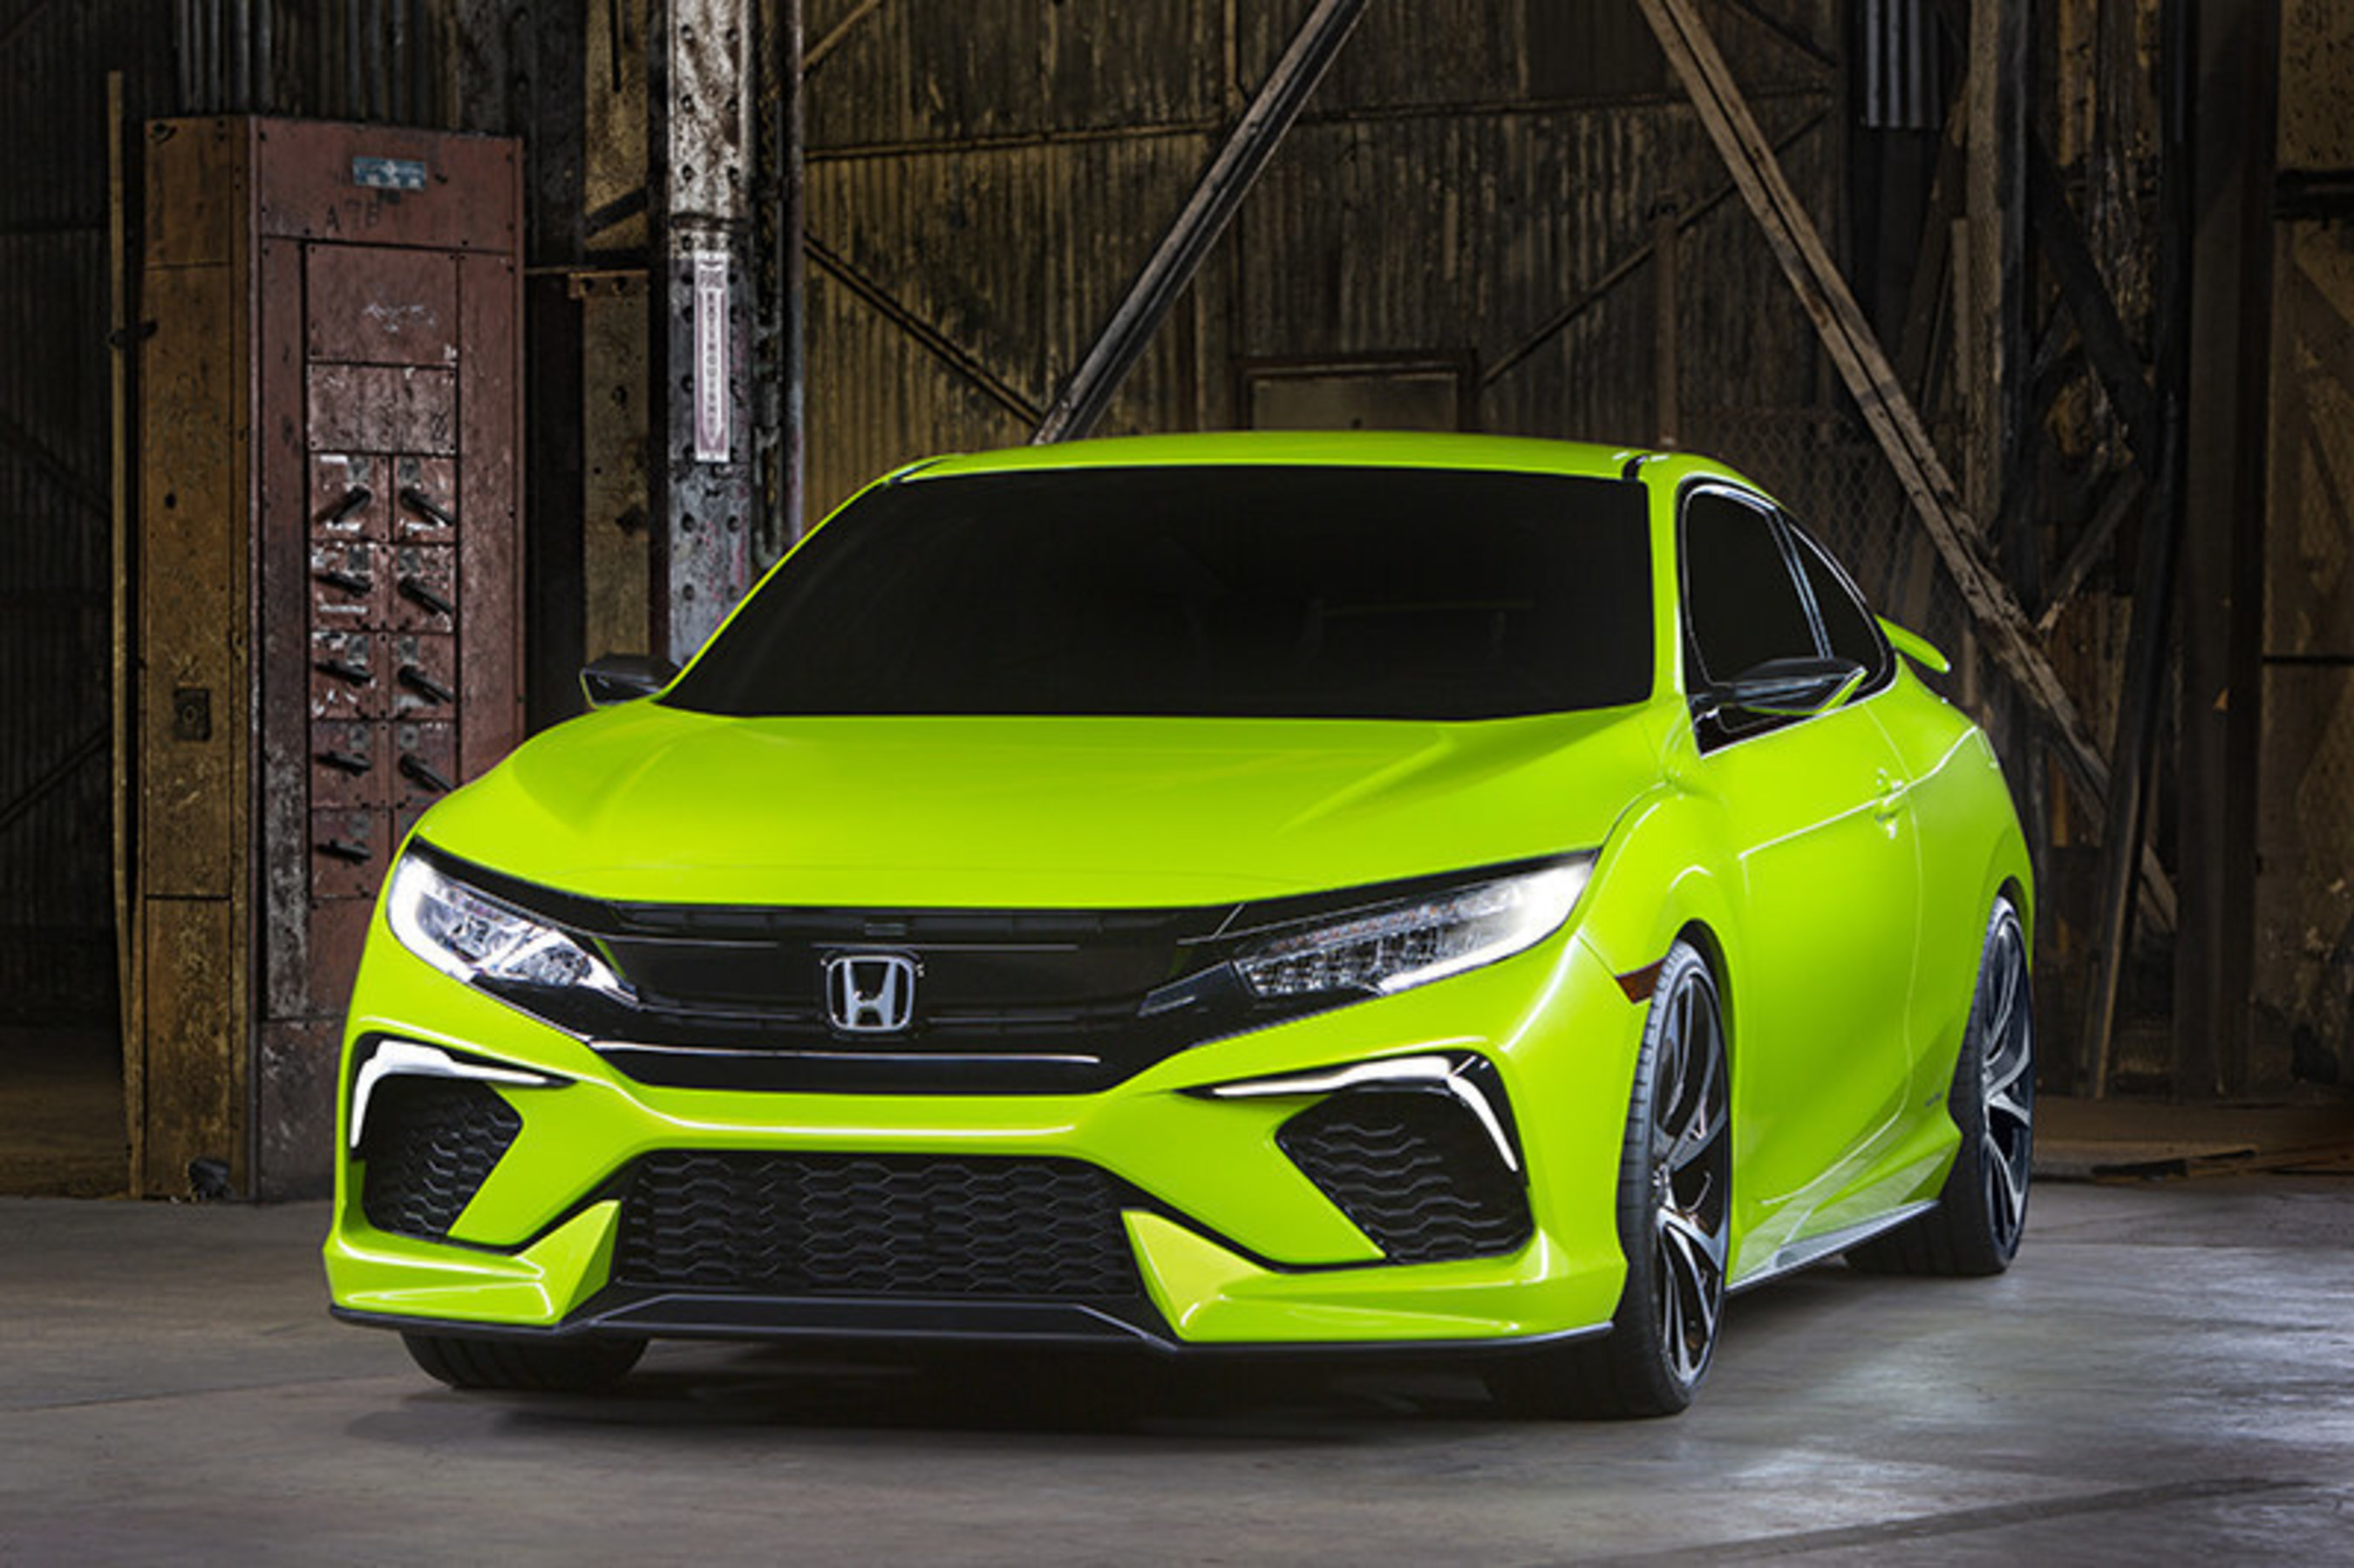 Honda Debuts Sportiest Civic Design in Brand History with 10th-Generation Civic Concept at New York International Auto Show